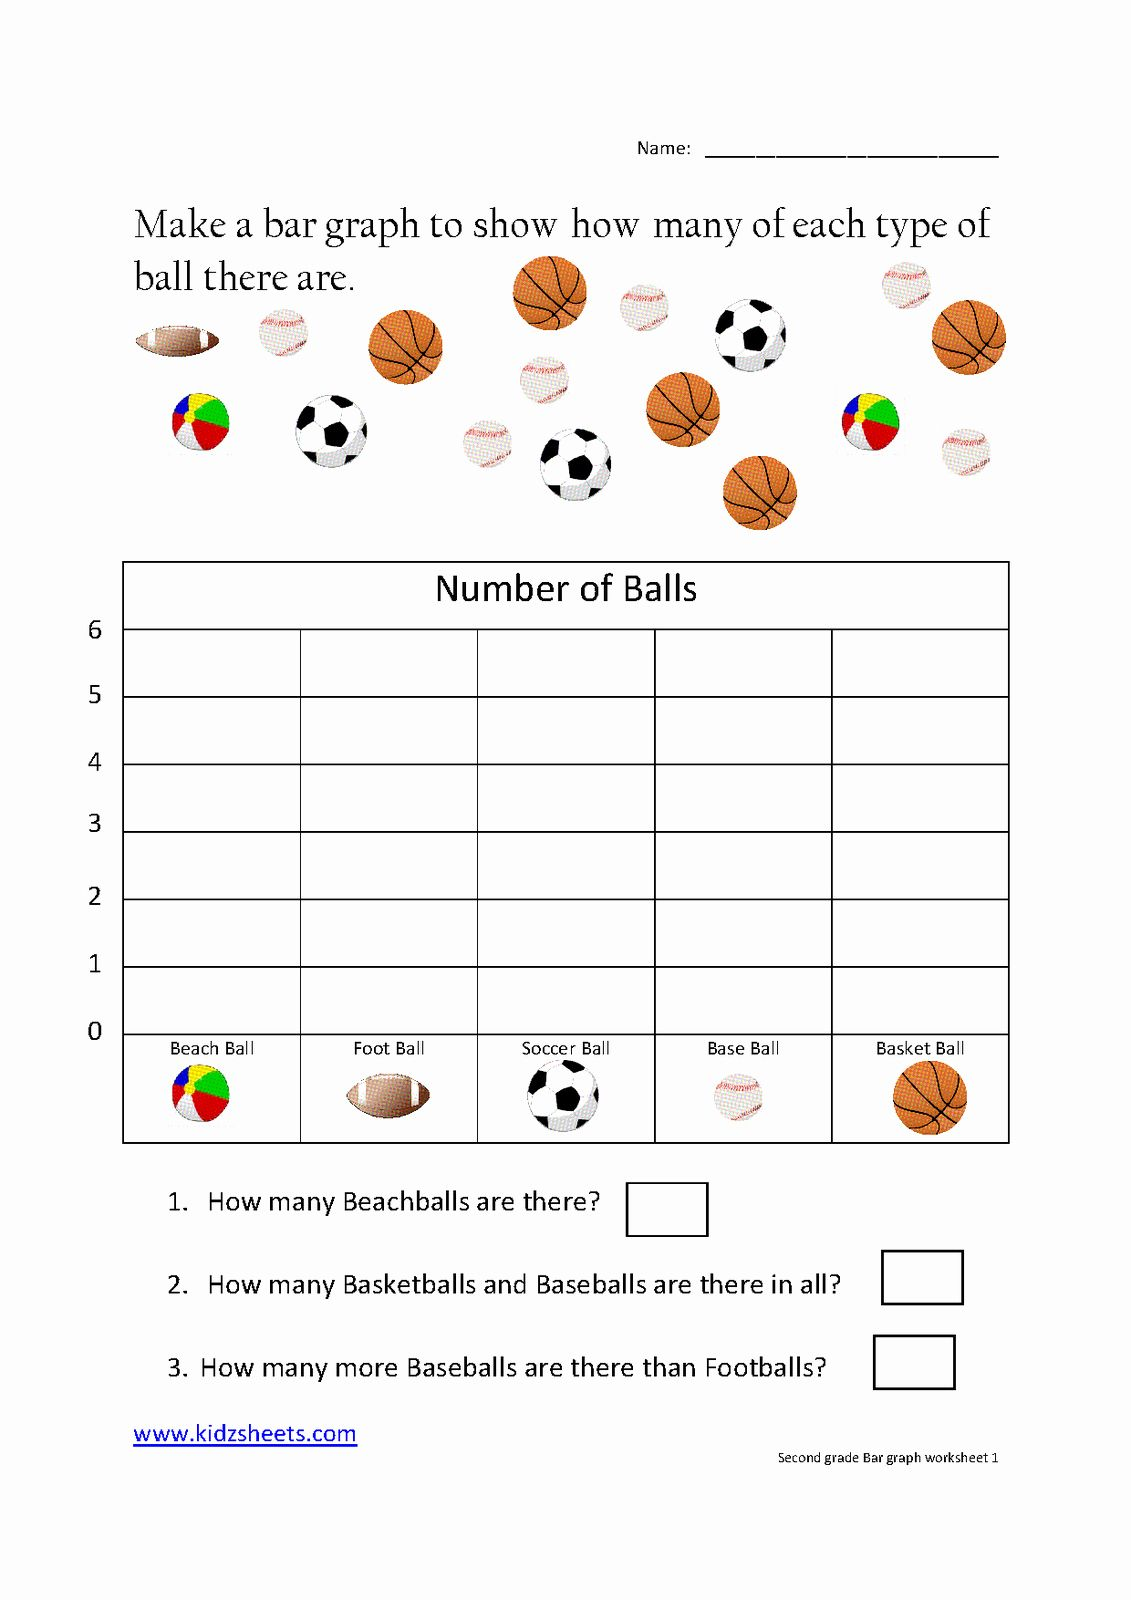 hight resolution of Free Bar Graph Worksheets Unique Kidz Worksheets Second Grade Bar Graph  Worksheet1   Graphing worksheets